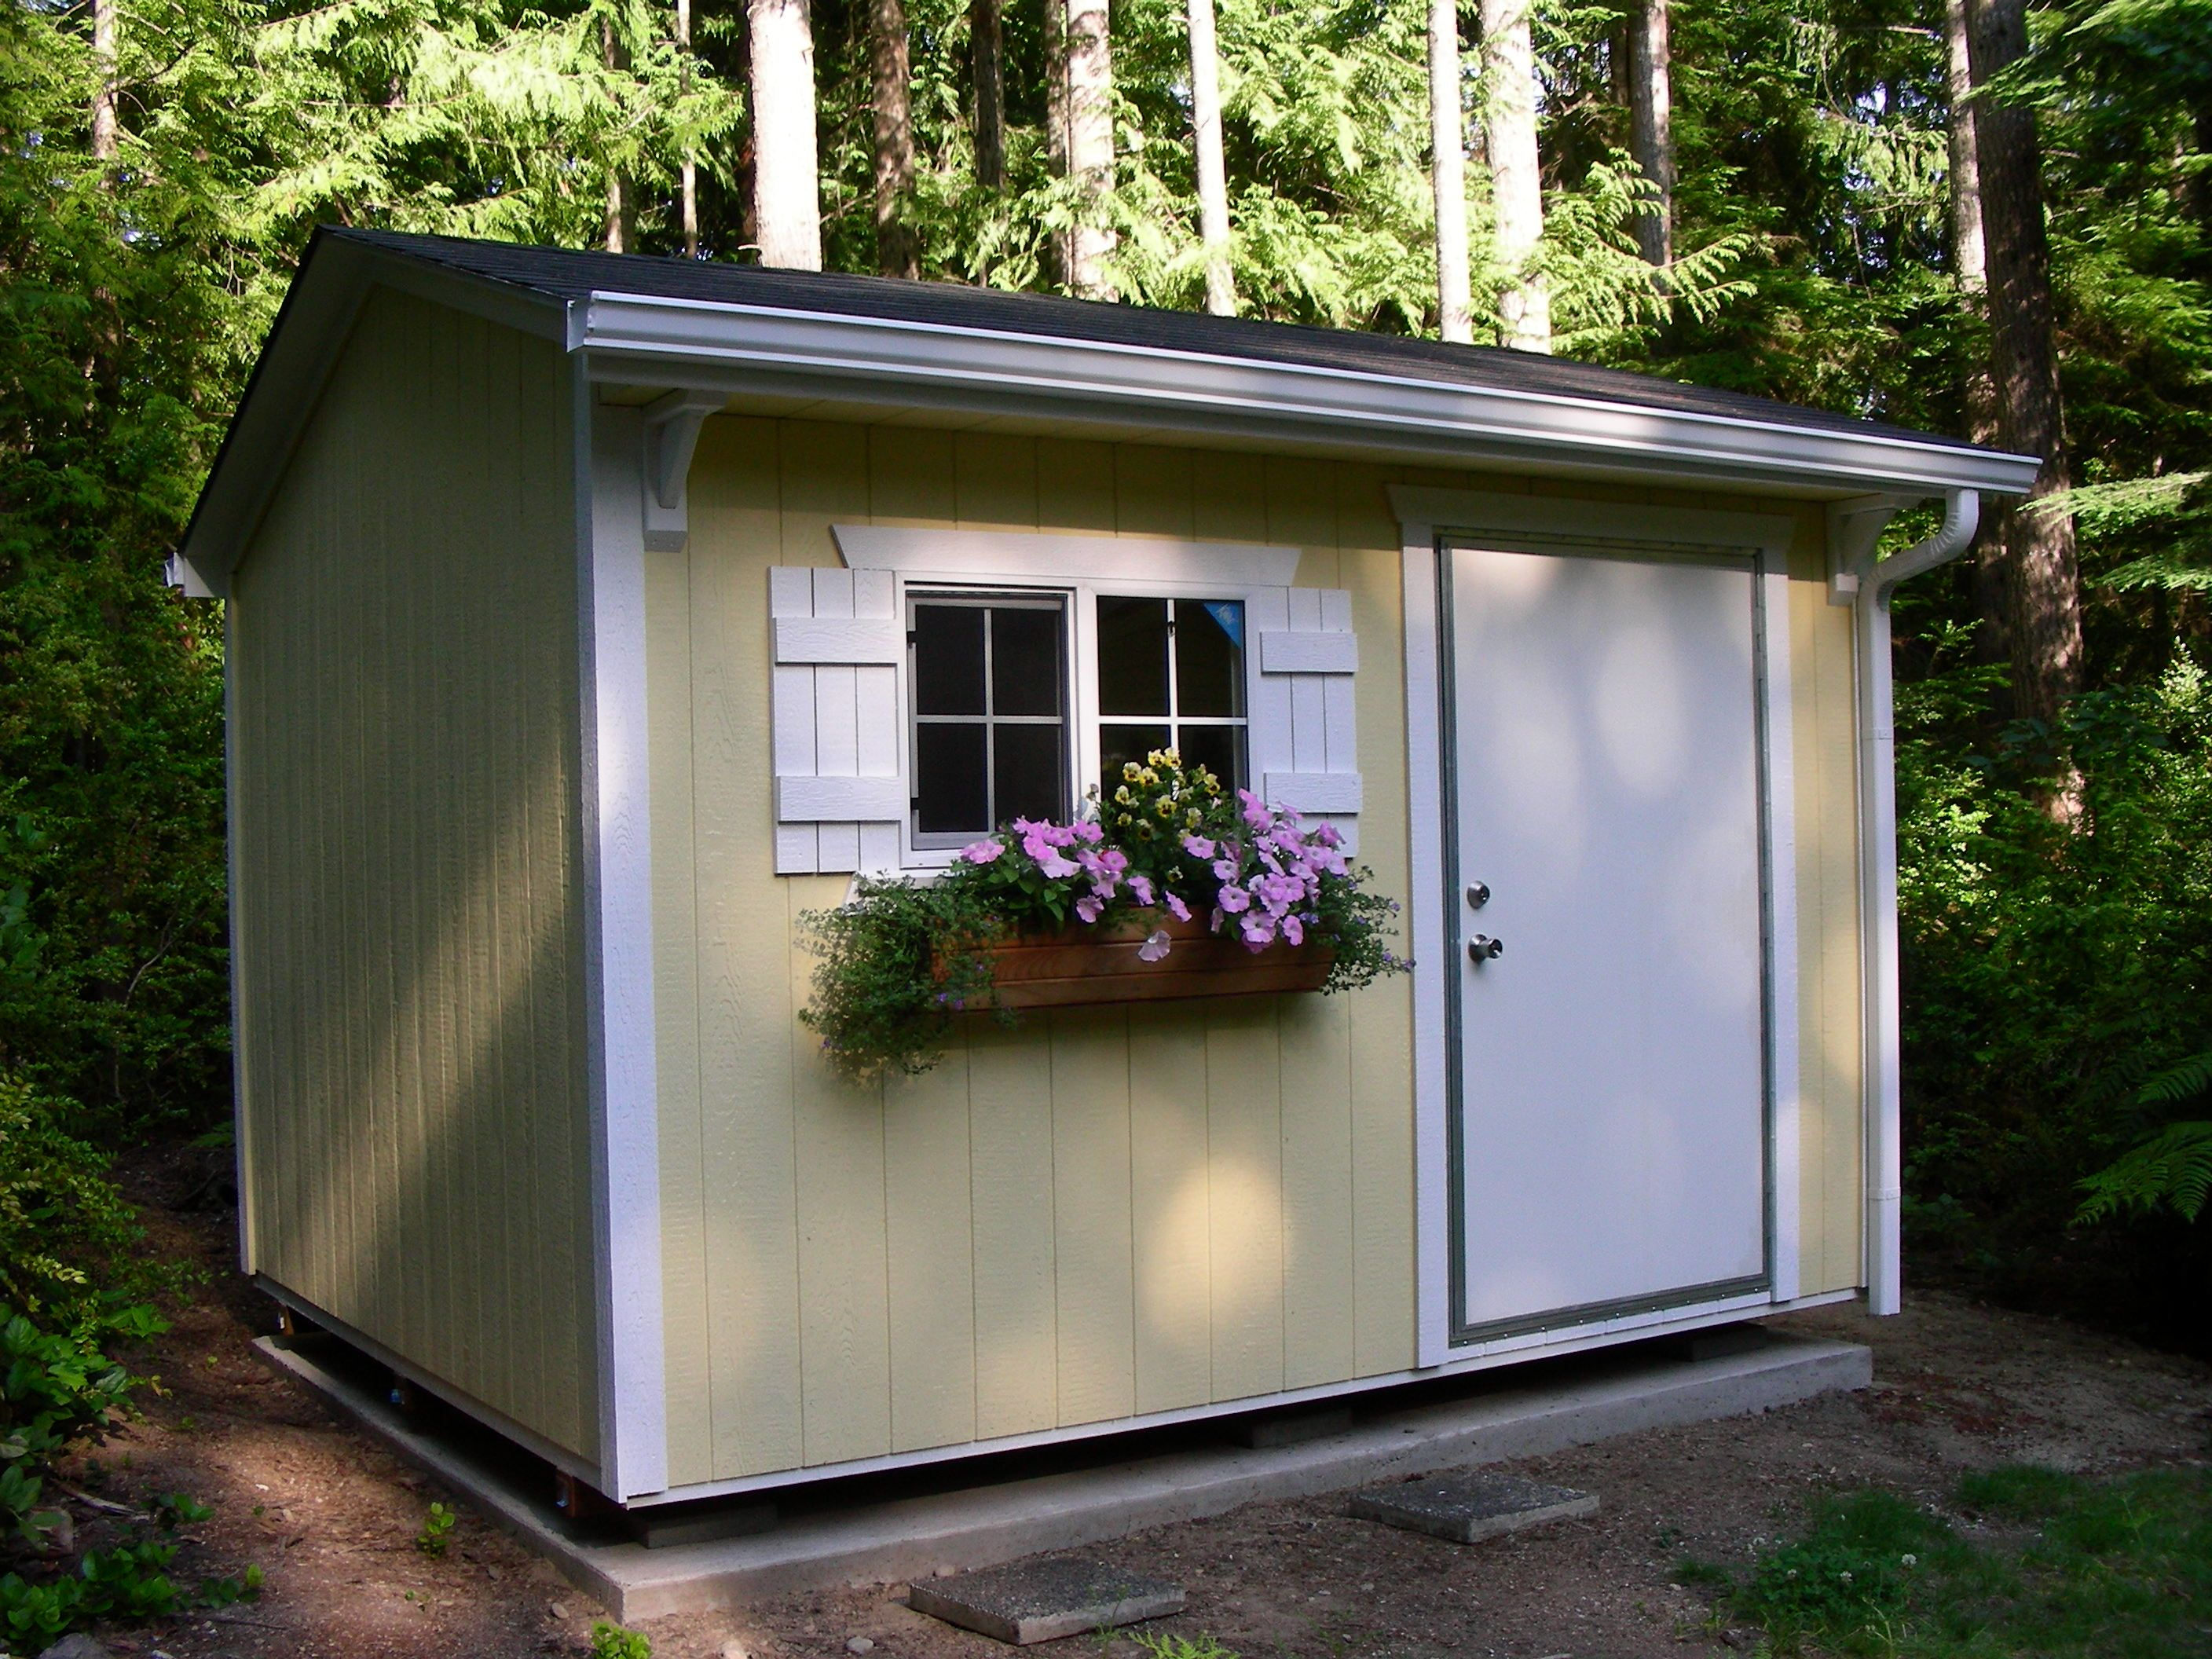 Courtyard Style Storage Garden Shed Playhouse Craft Room Mother